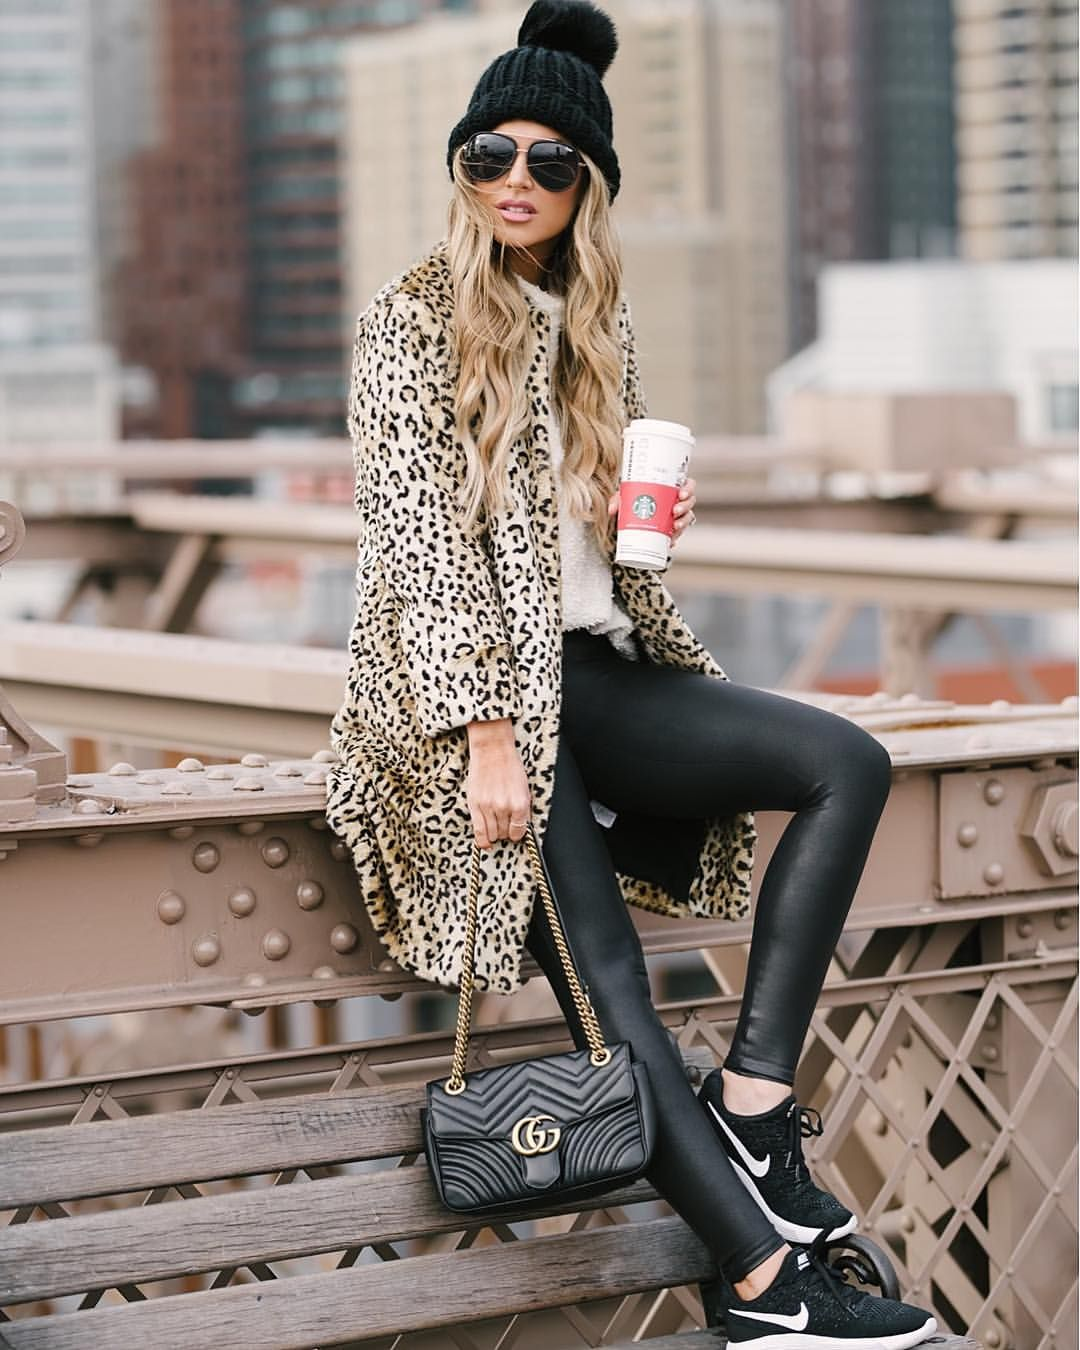 """4,344 Likes, 77 Comments - Hollie Woodward (@holliewdwrd) on Instagram: """"Already missing those NYC views  This leopard coat is so cute and less than $150! Details linked…"""""""